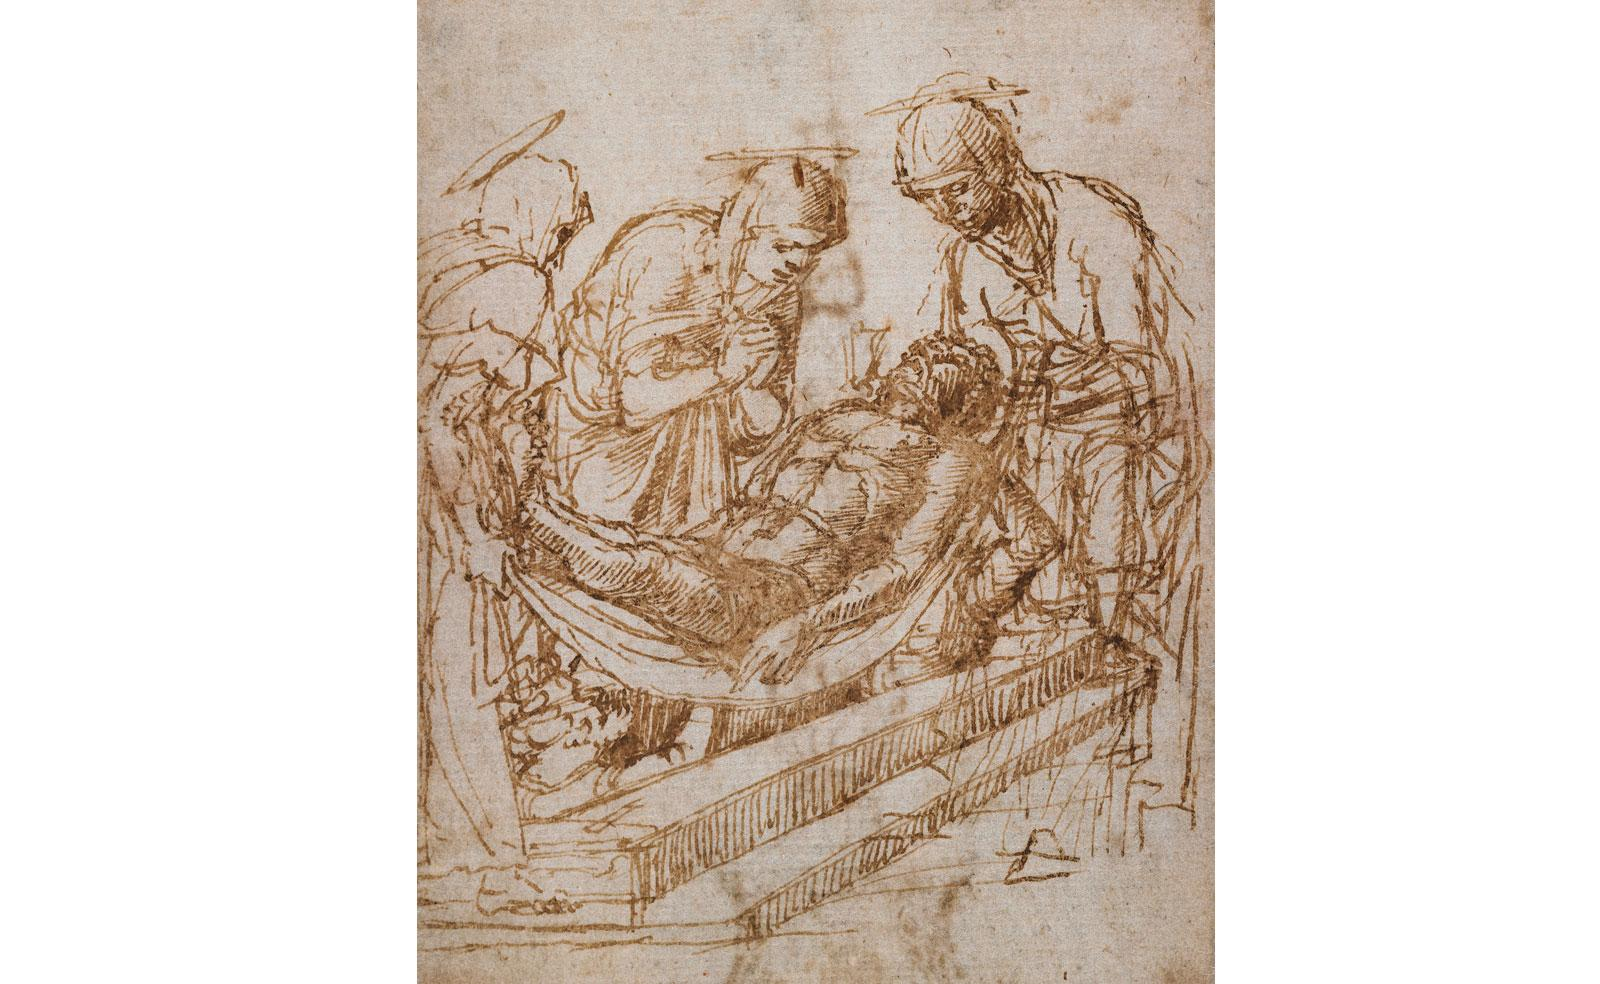 Deposition by Andrea Mantegna.